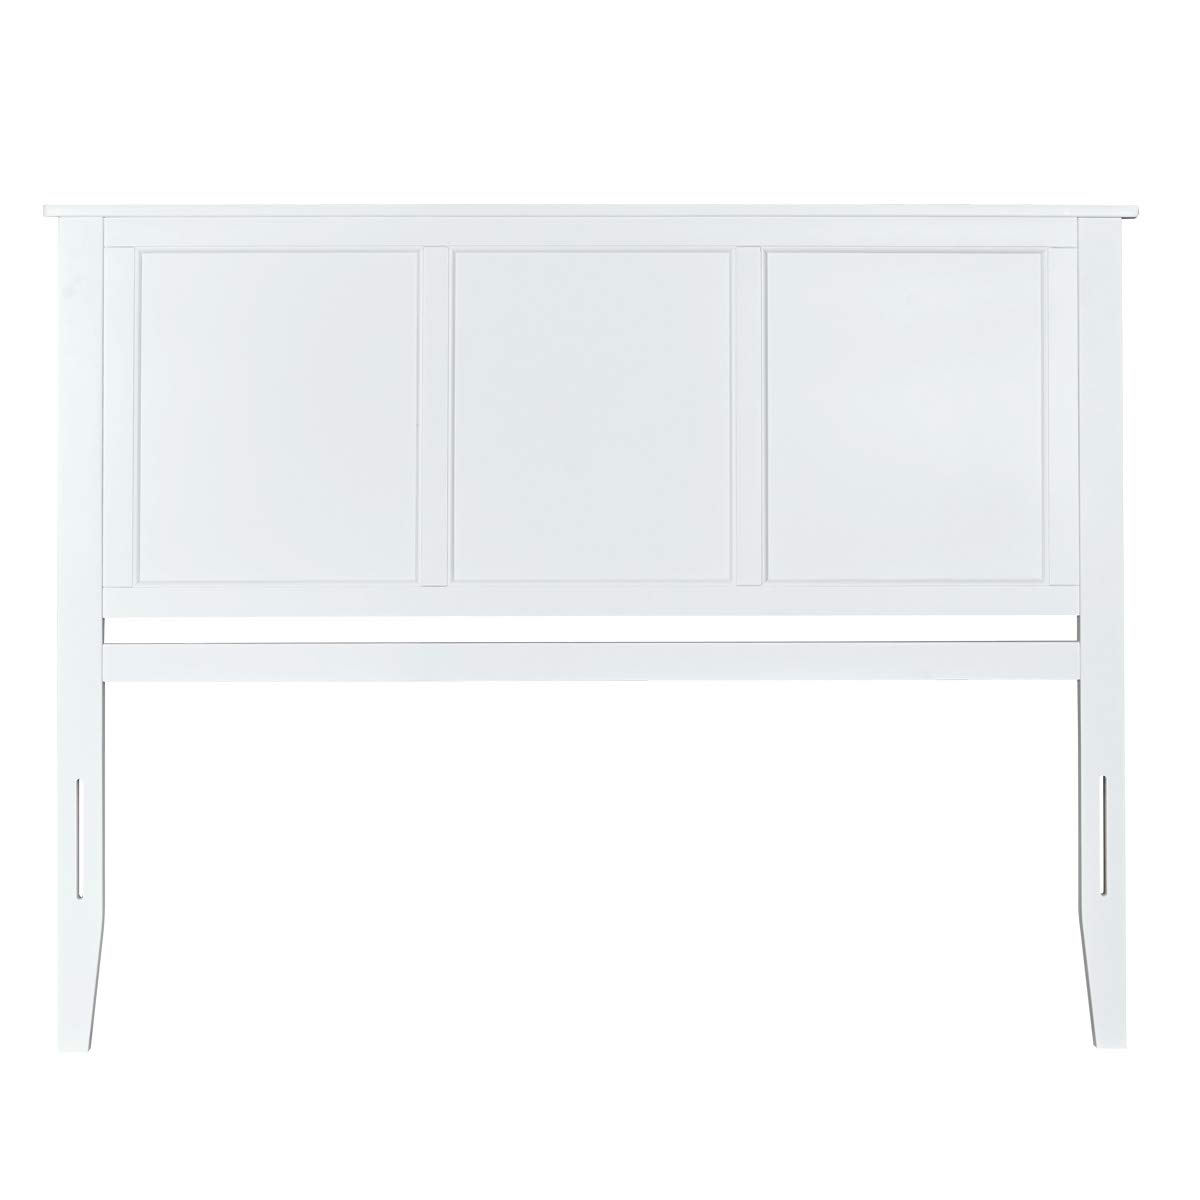 MUSEHOMEINC Georgia Solid Wood Headboard Panel with Flat Top Rail Design, White Fnish, Queen by MUSEHOMEINC